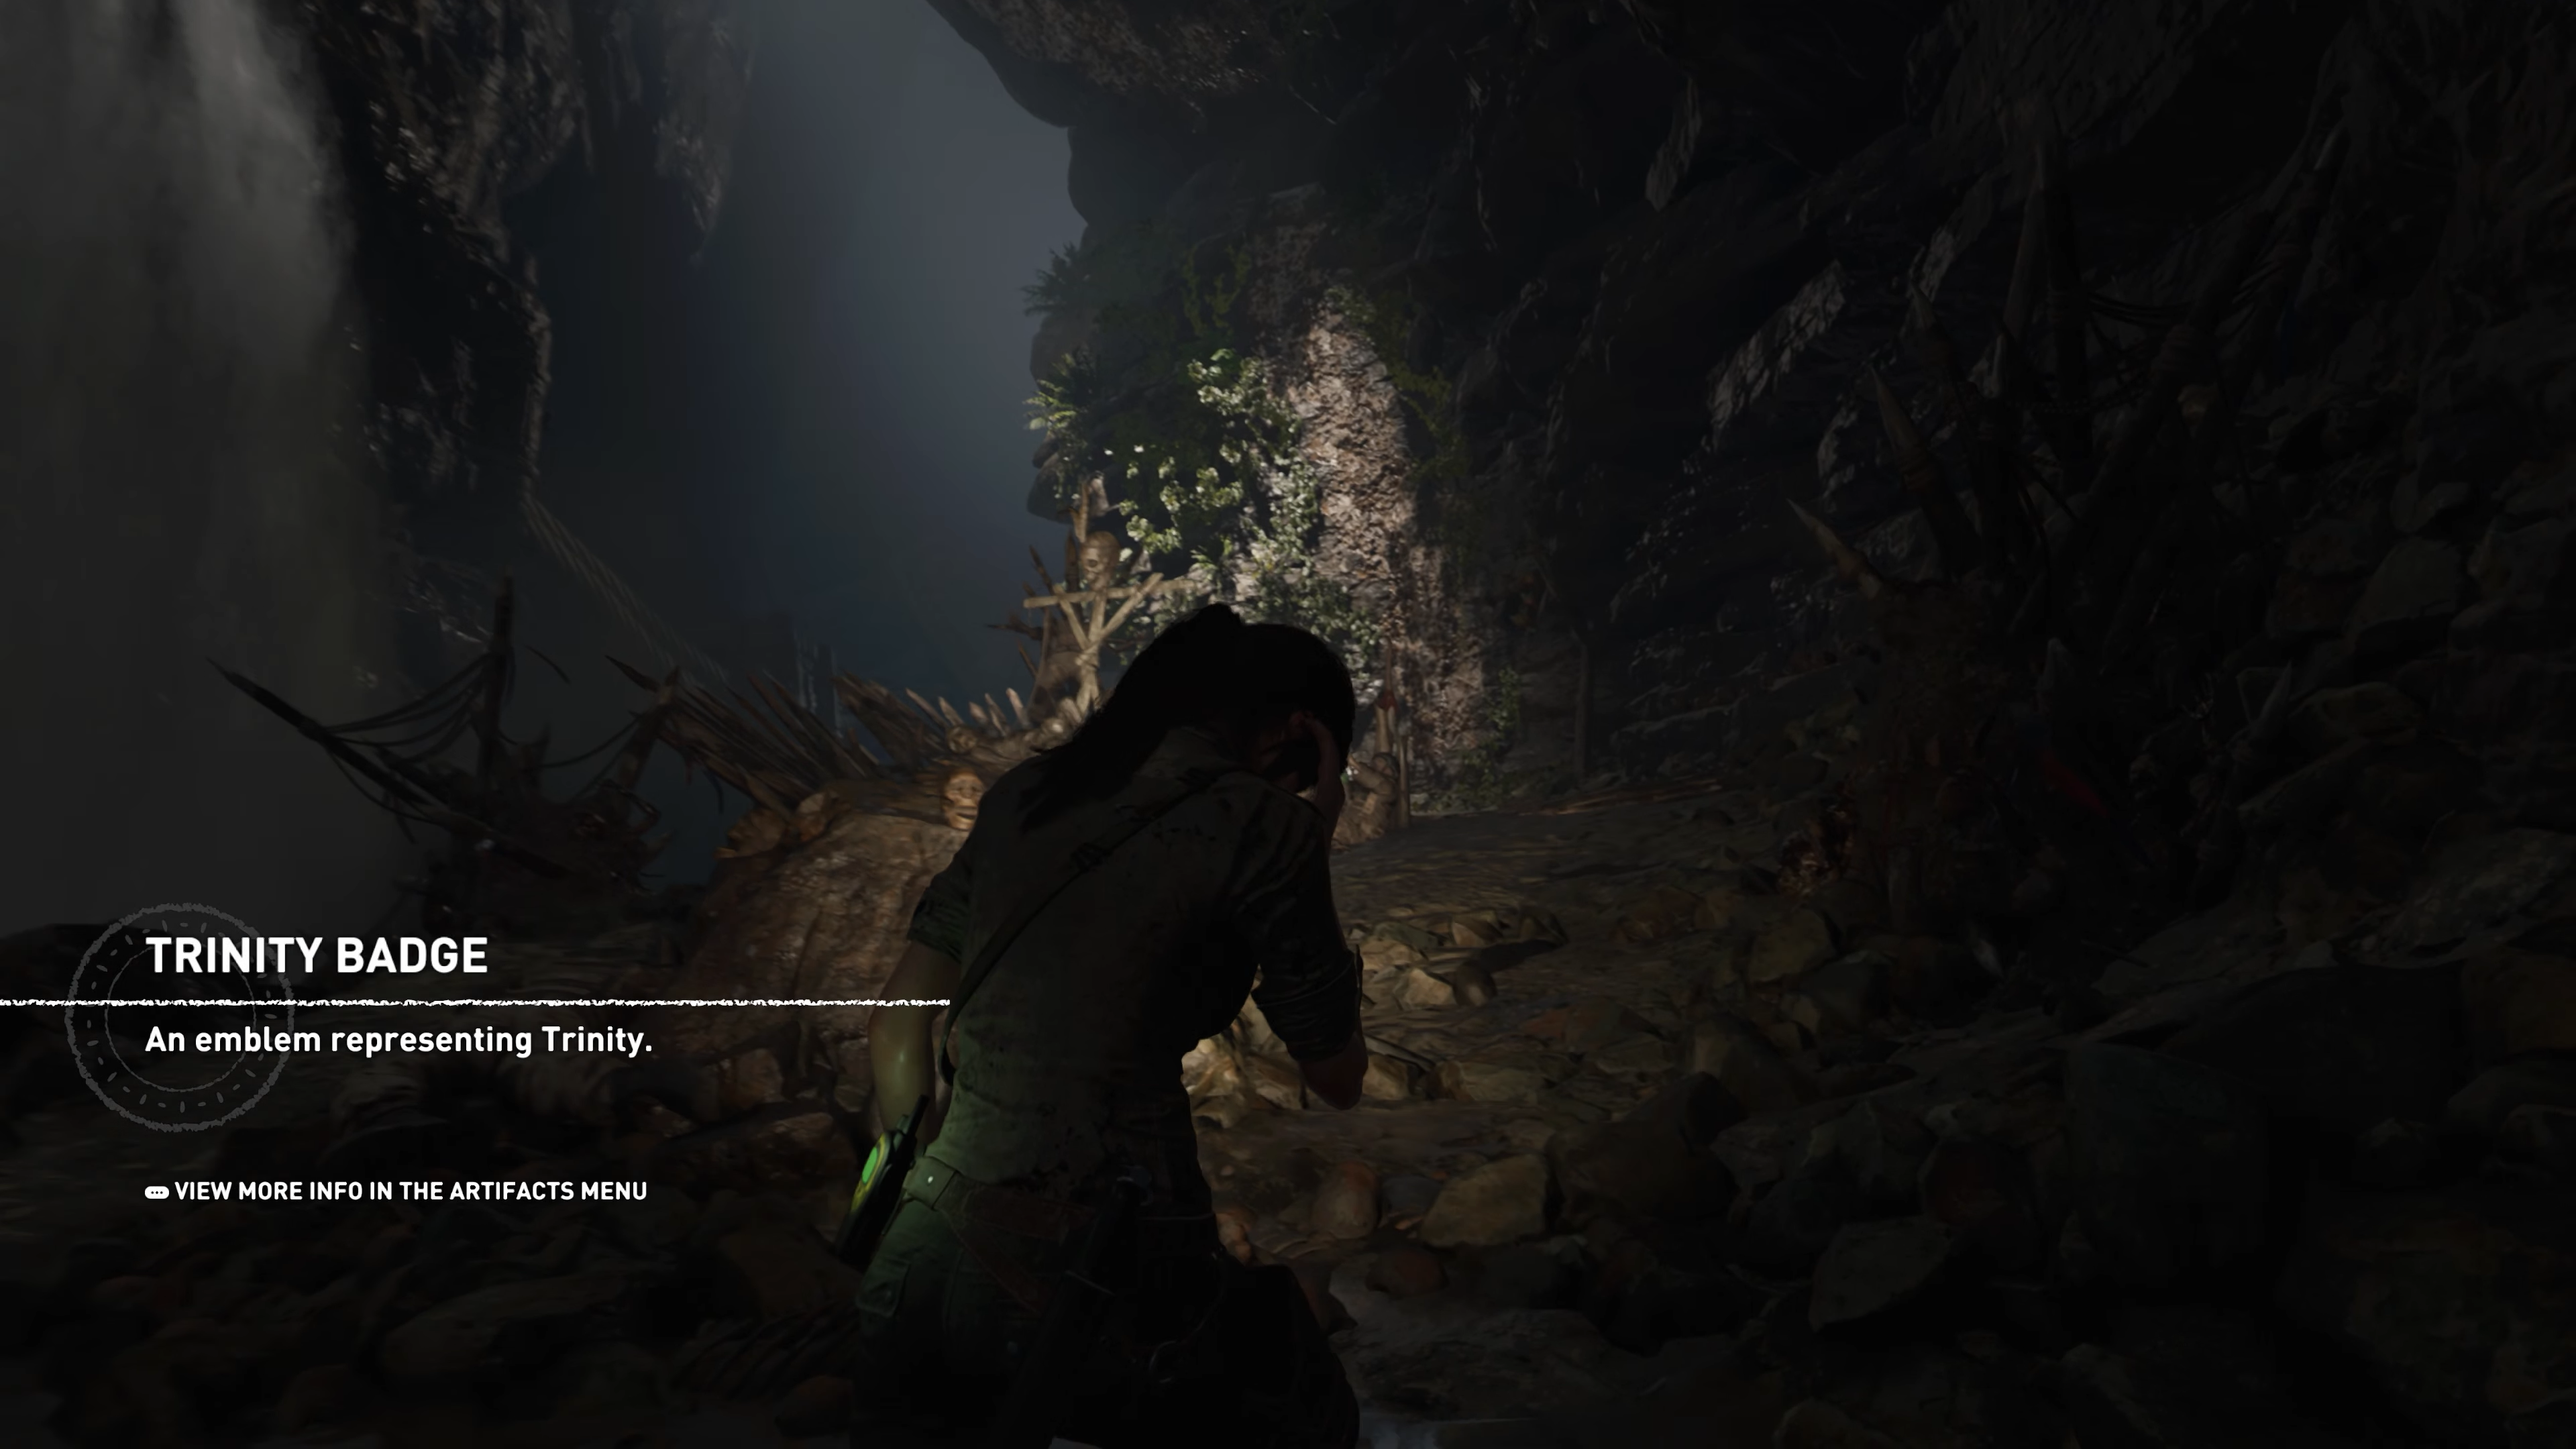 CHOOSE UR SIZE Shadow of the Tomb Raider Poster New Hit 2018 Xbox PS4 FREE P+P